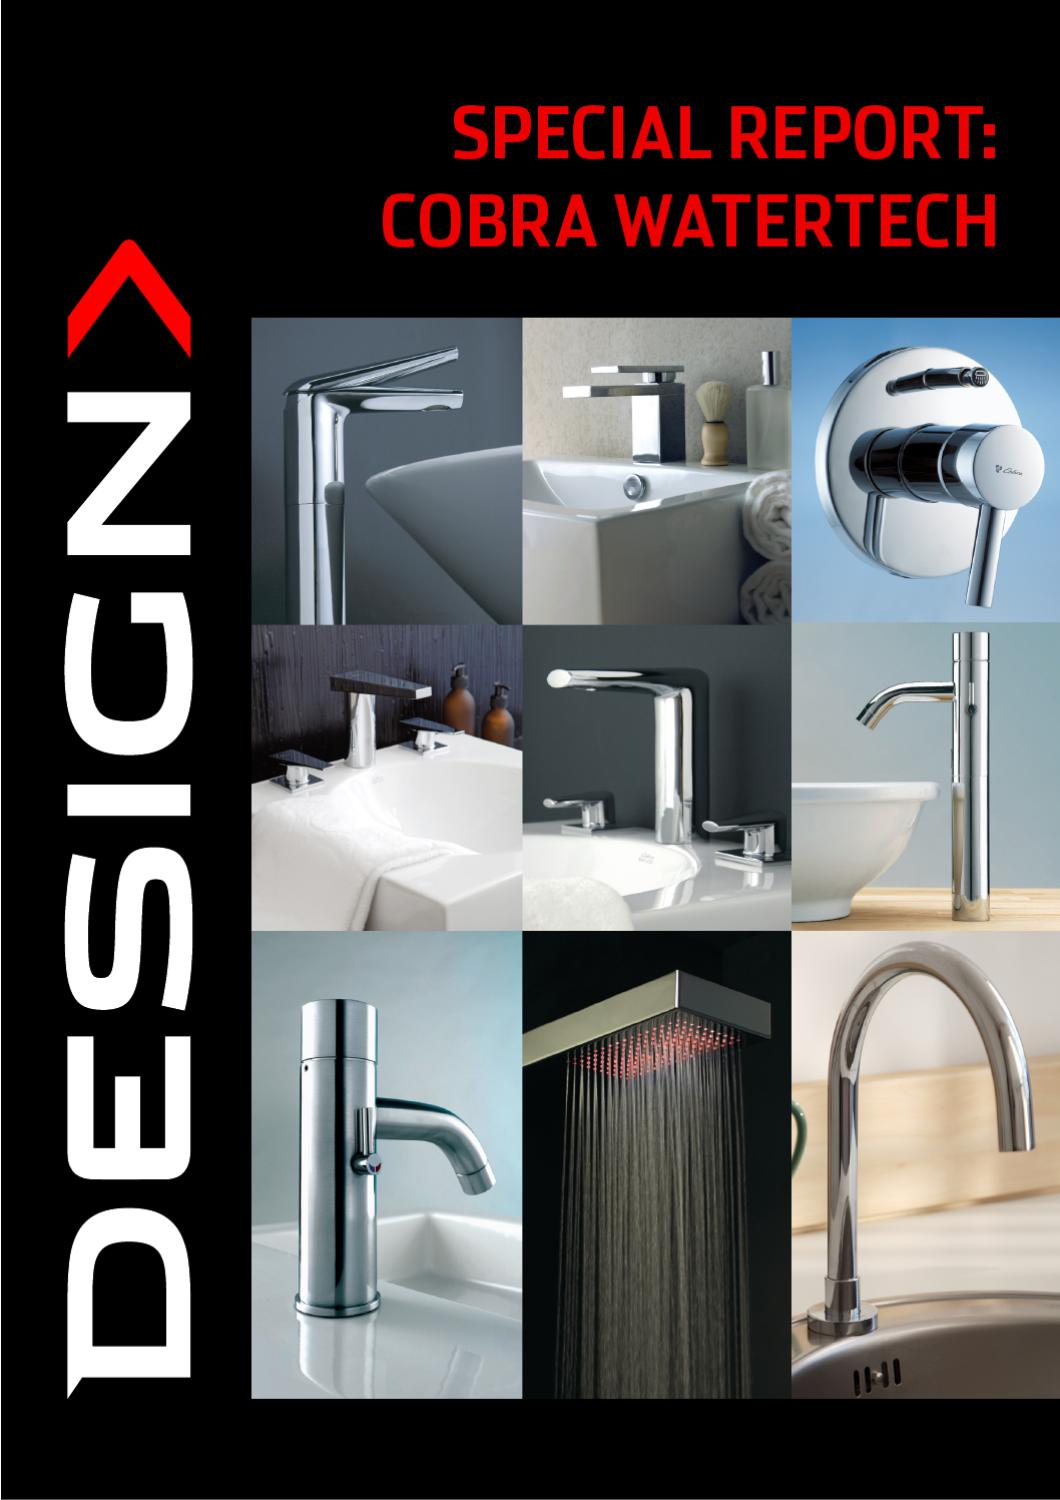 Cobra Watertech Special Report By Design Gt Issuu